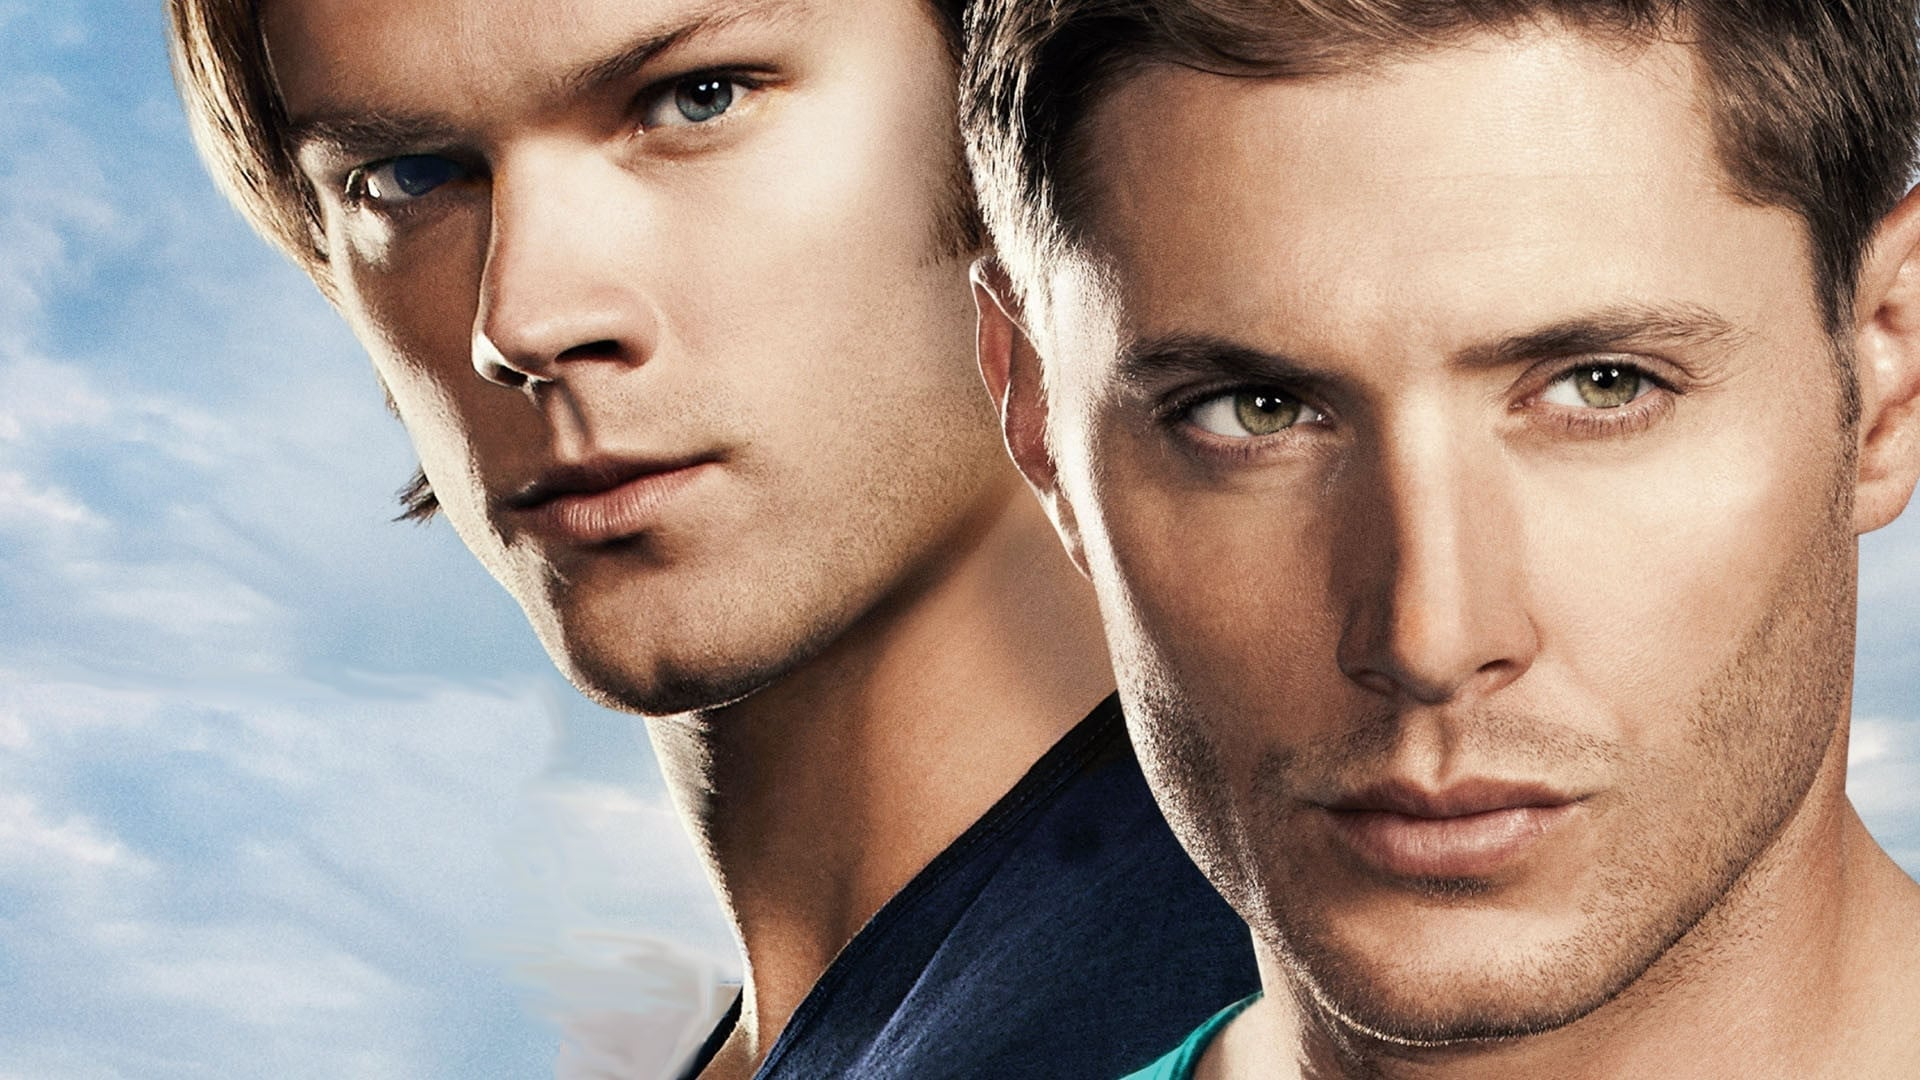 Supernatural - Season 8 Episode 19 Taxi Driver